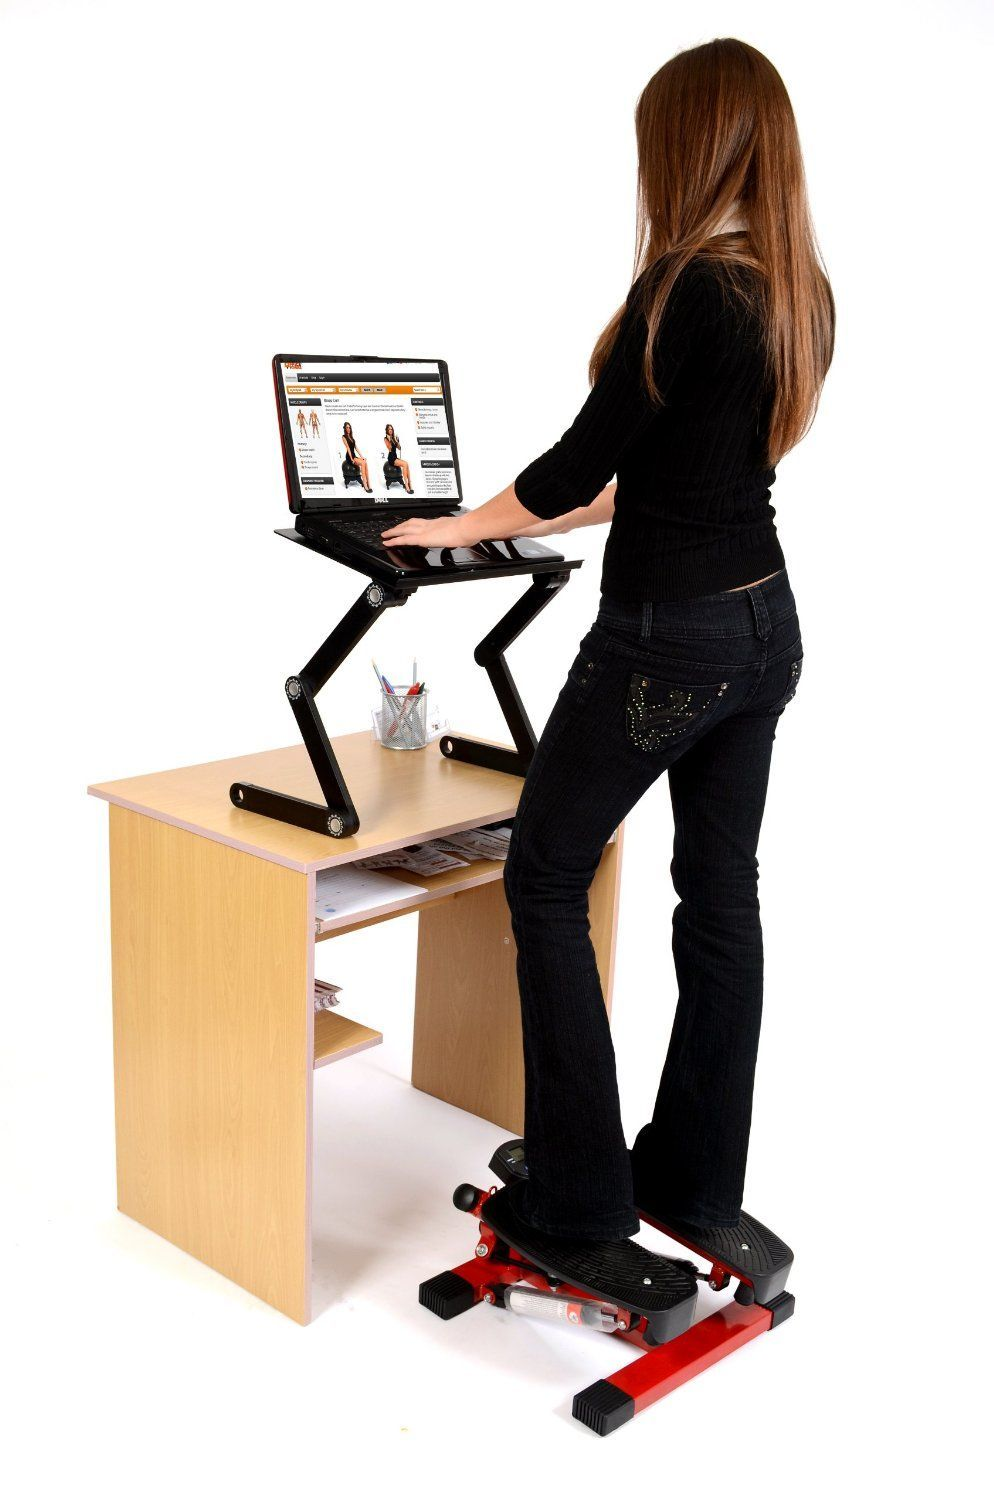 Bon Office Fitness Twist Stepper With Bungee Cords Black/Red Mini Twist Stepper  Fitness Workout Machine: Amazon.co.uk: Sports U0026 Outdoors # ...